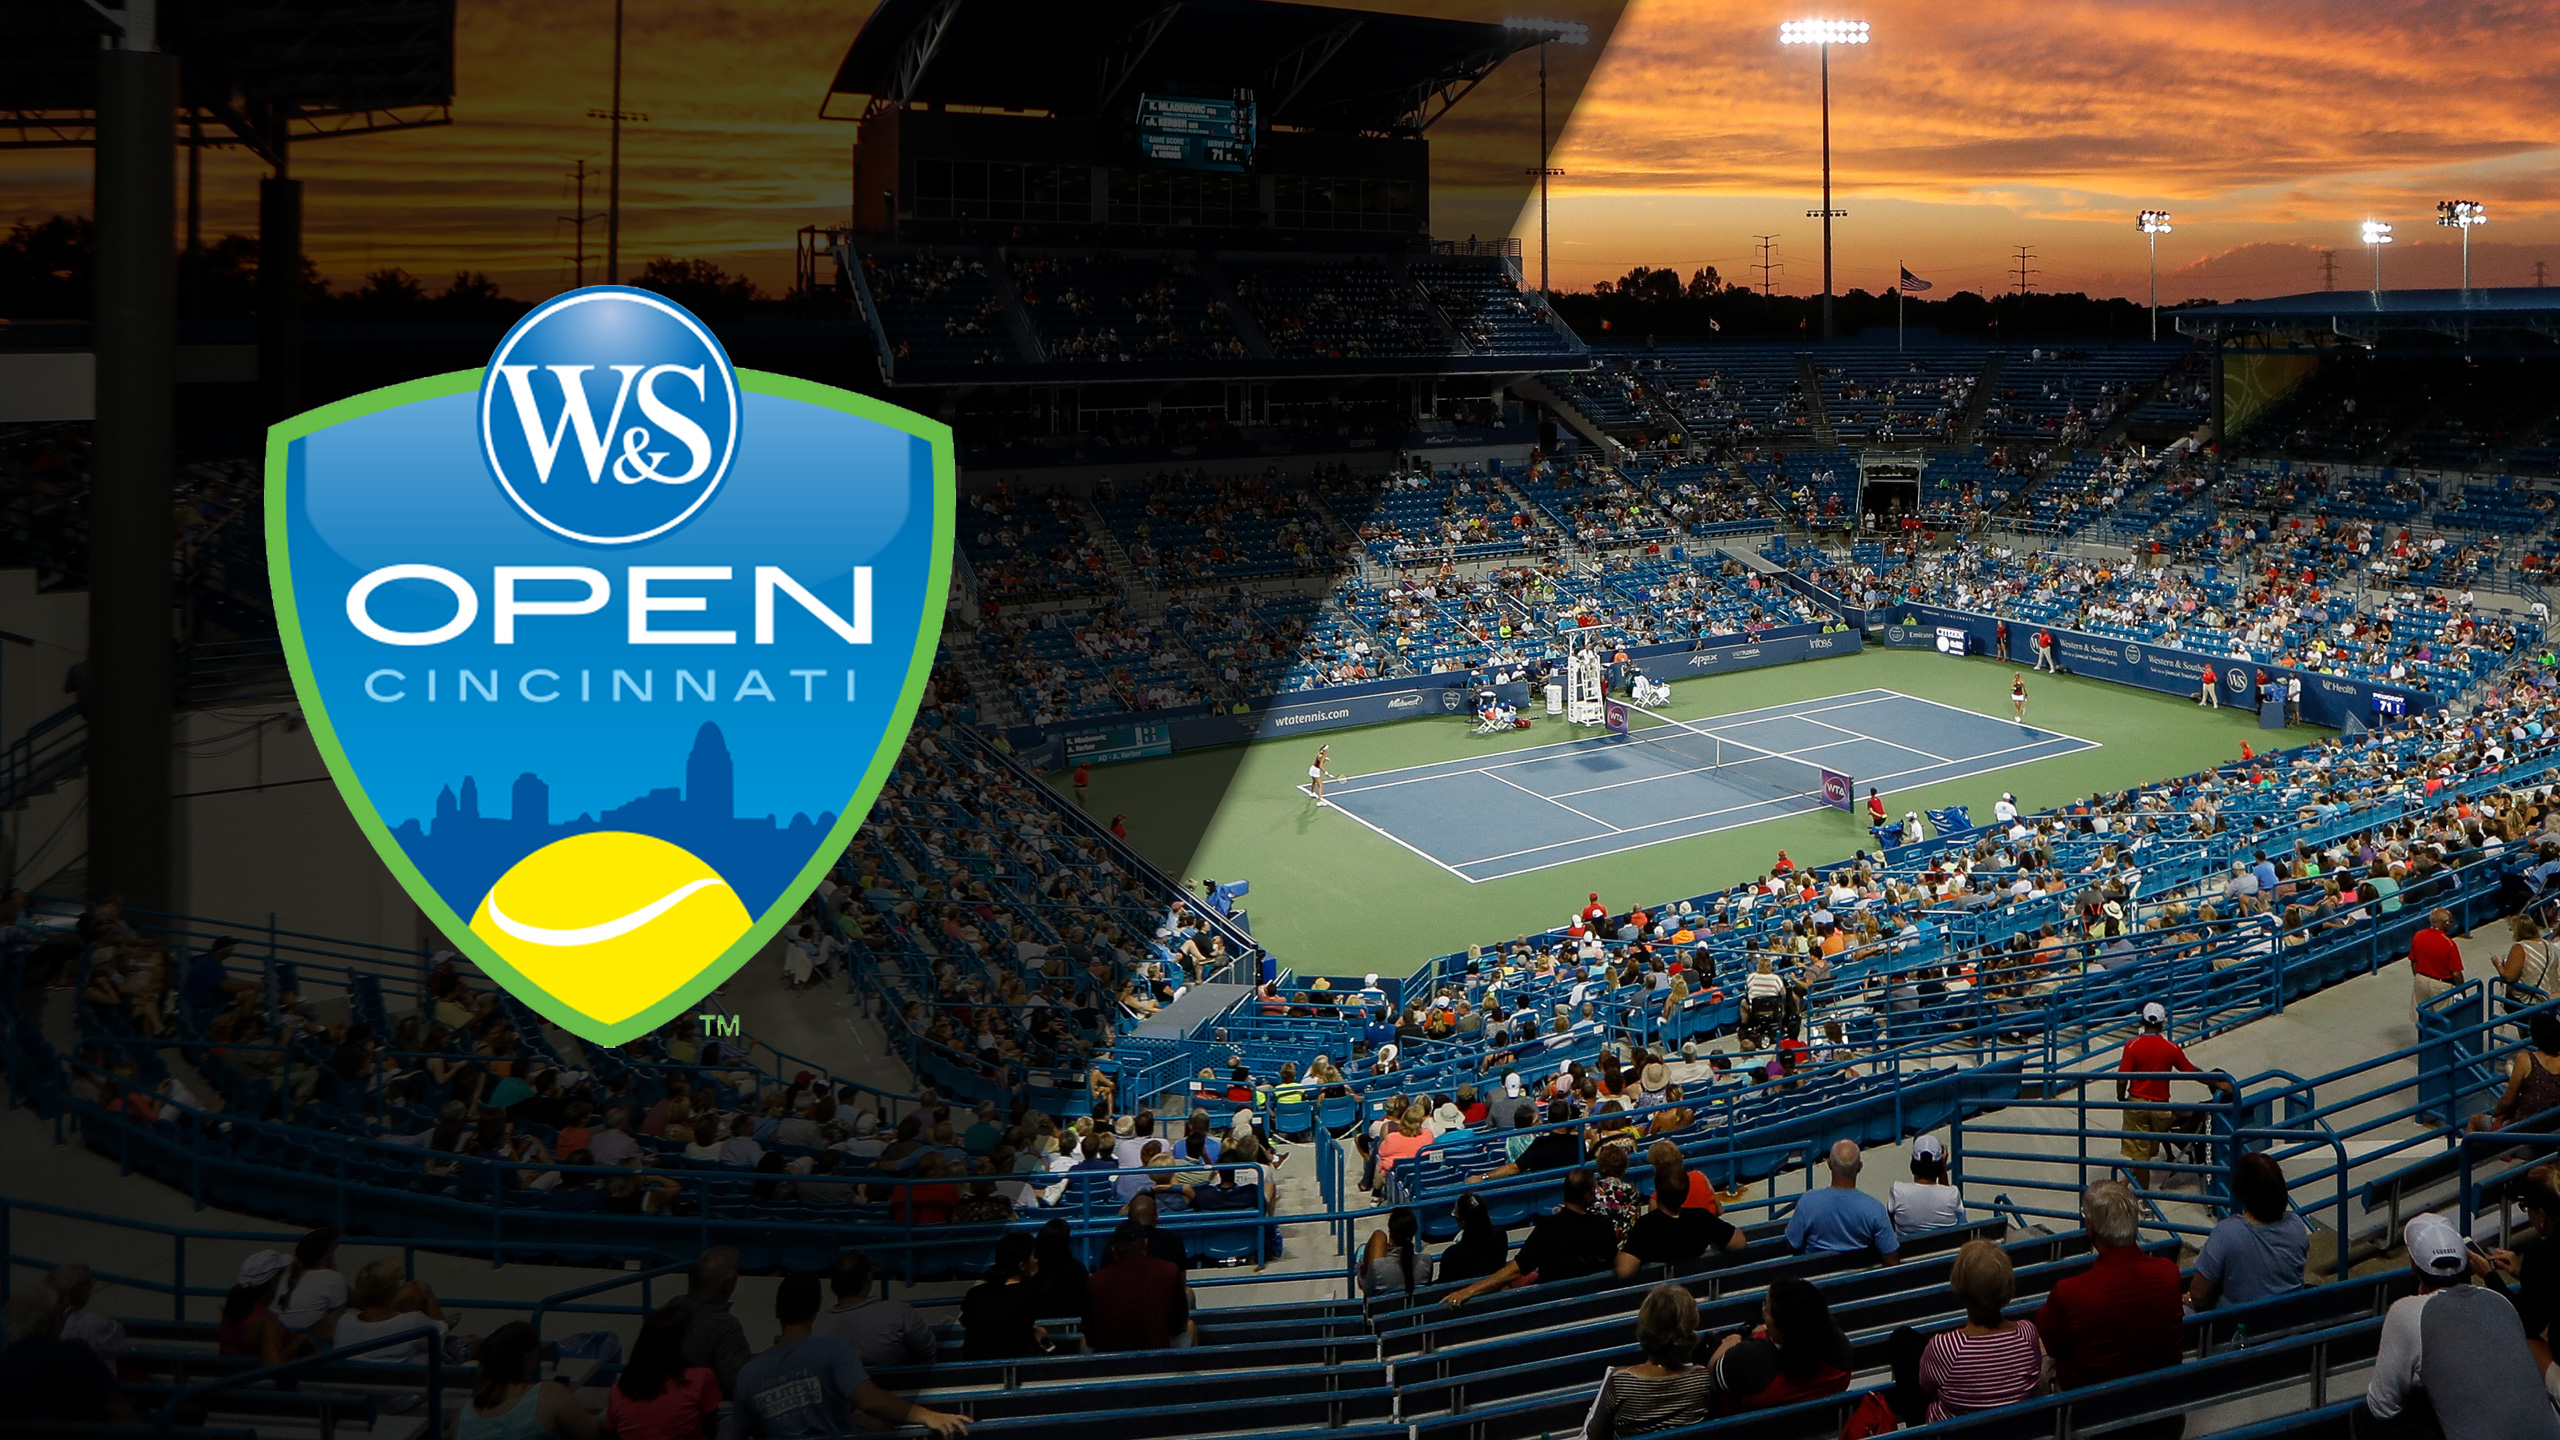 2018 US Open Series - Western & Southern Open (Men's & Women's Round of 16)